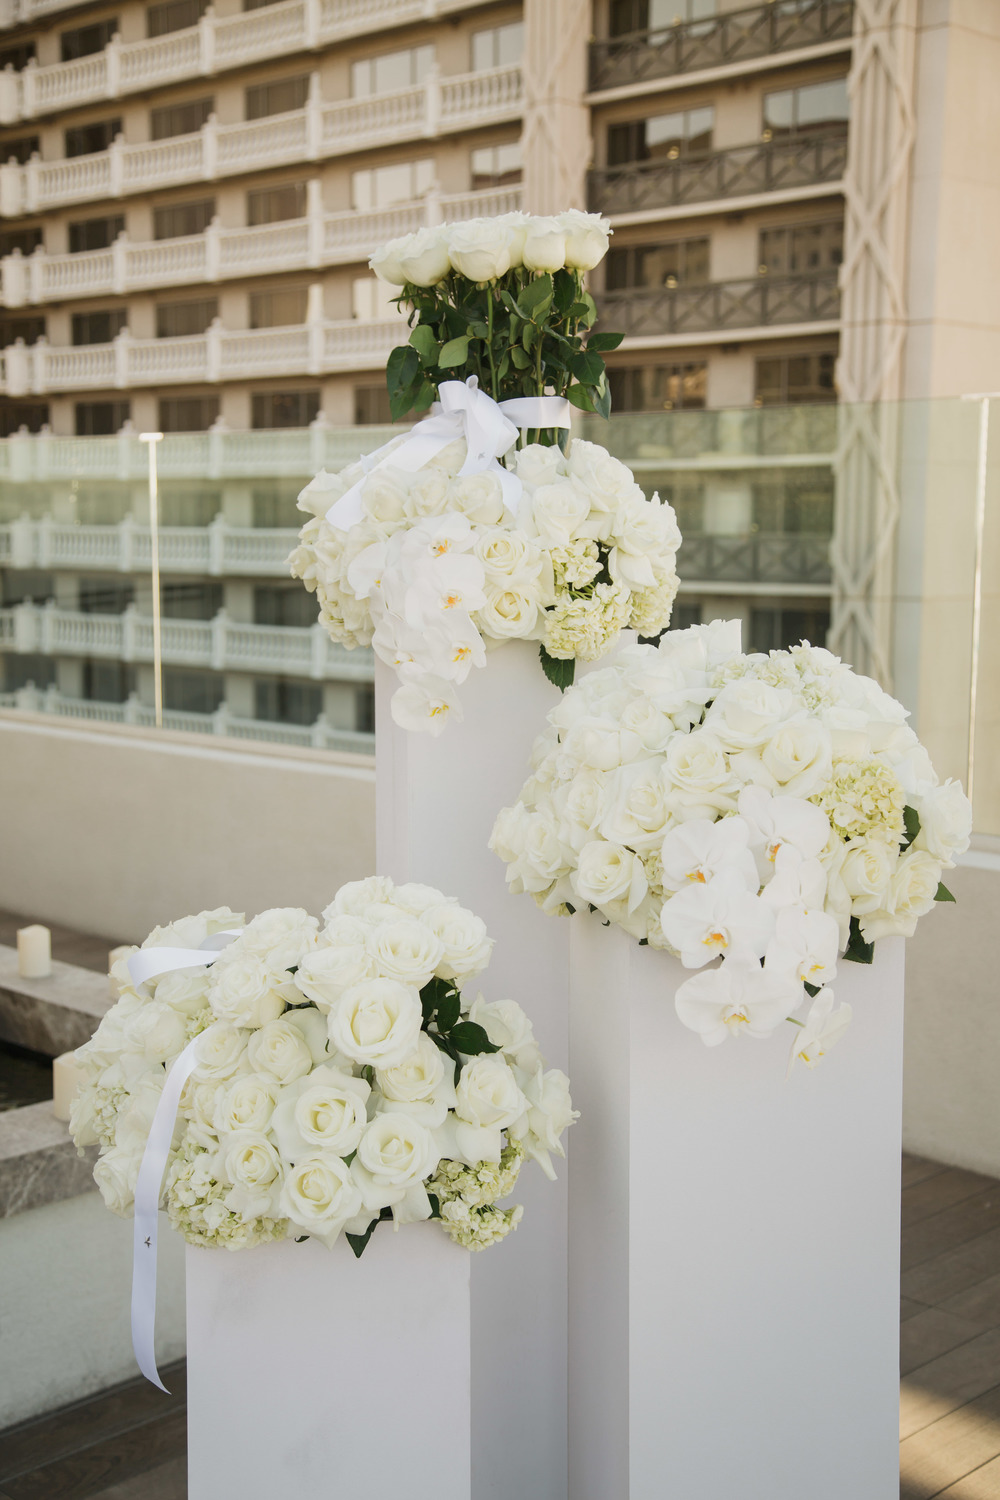 Gorgeous white on white wedding centerpieces. Vendor Credits:  Wedding in the  Nobu Villa   |  Las Vegas Wedding Planner  Andrea Eppolito    |  Photography by  Adam Frazier   |  Videography by  Pure Light Creative   |  Floral and Decor by  Destinations by Design   |  Lighting by LED Unplugged  |  Music by  DJ Mike Fox